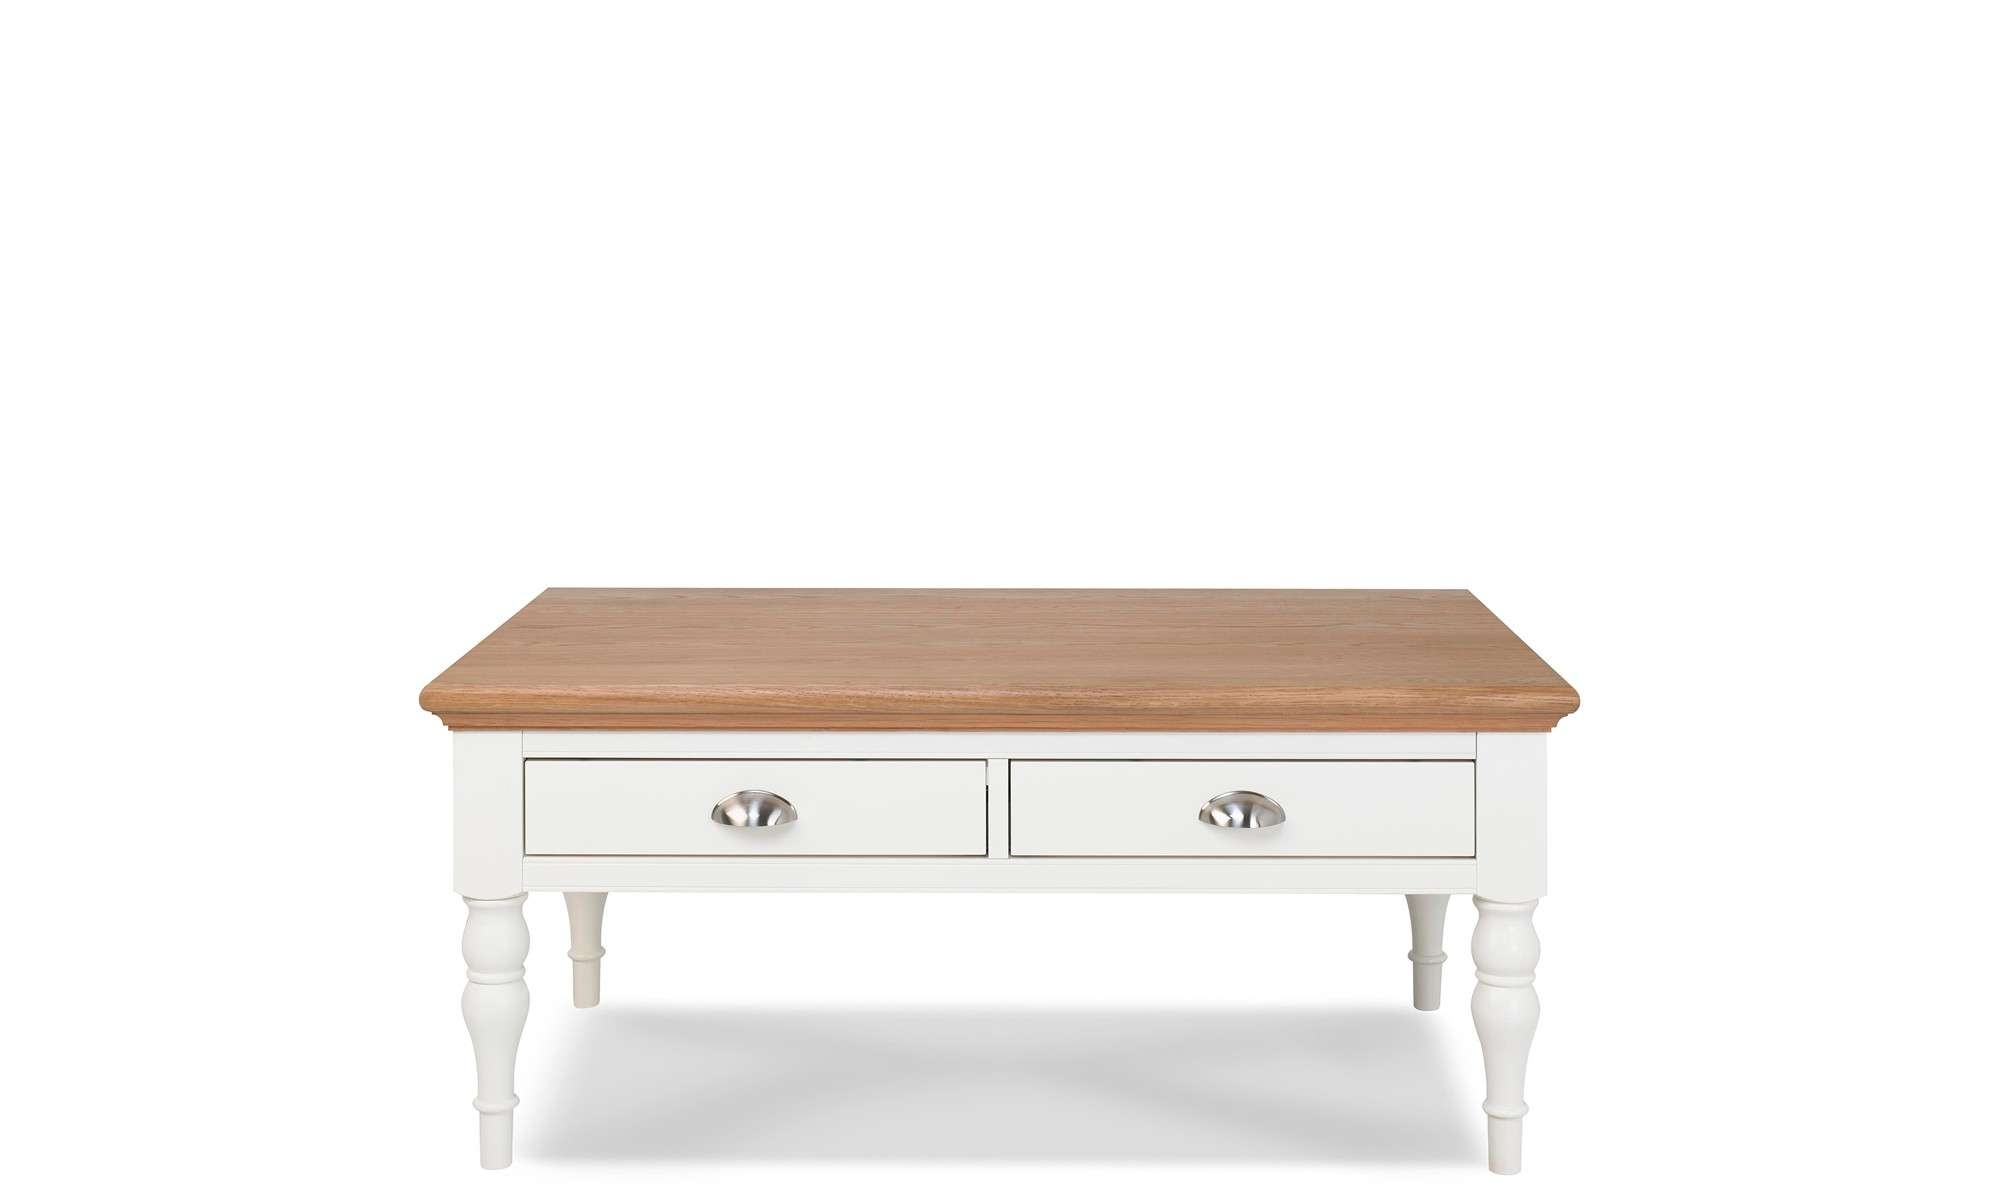 Most Recent Cream And Oak Coffee Tables Intended For Coffee Tables – Wooden And Glass Coffee Tables – Fishpools (View 11 of 20)